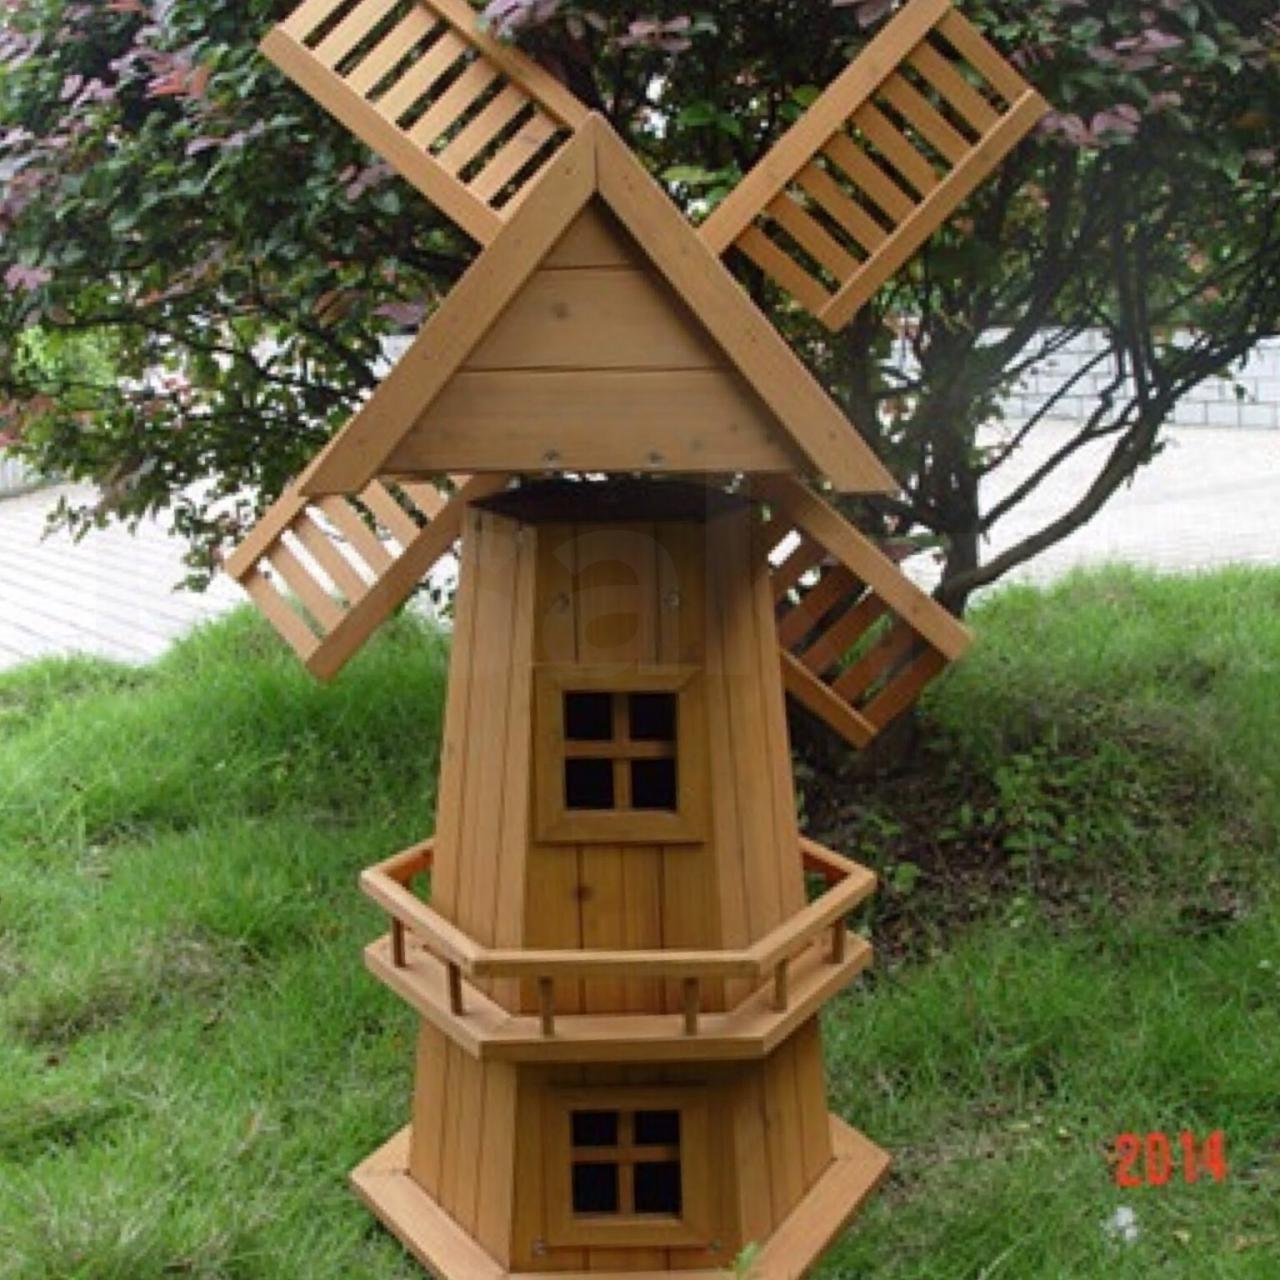 New 90cm Wooden Windmill Garden Ornament Plant Holder